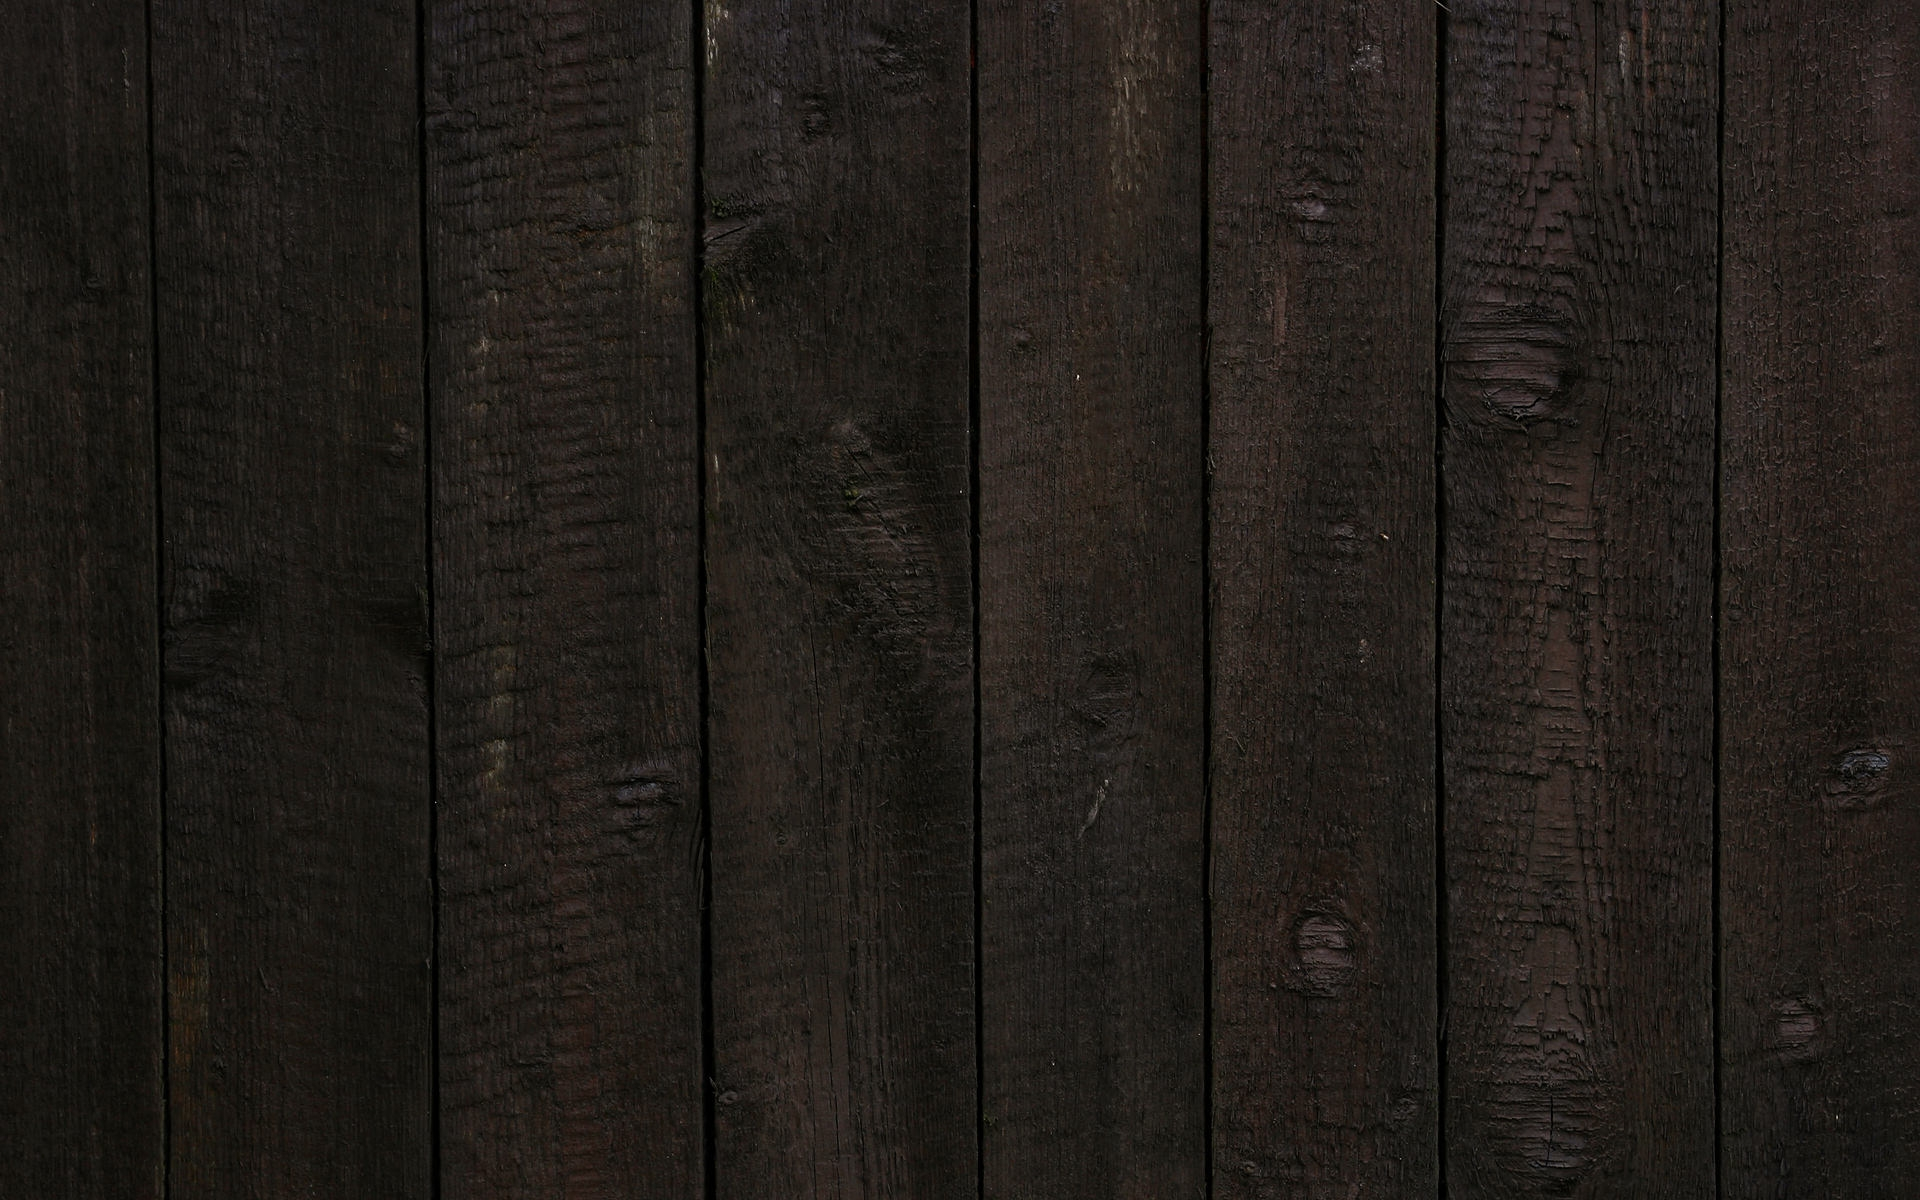 Black Wood Tumblr Background